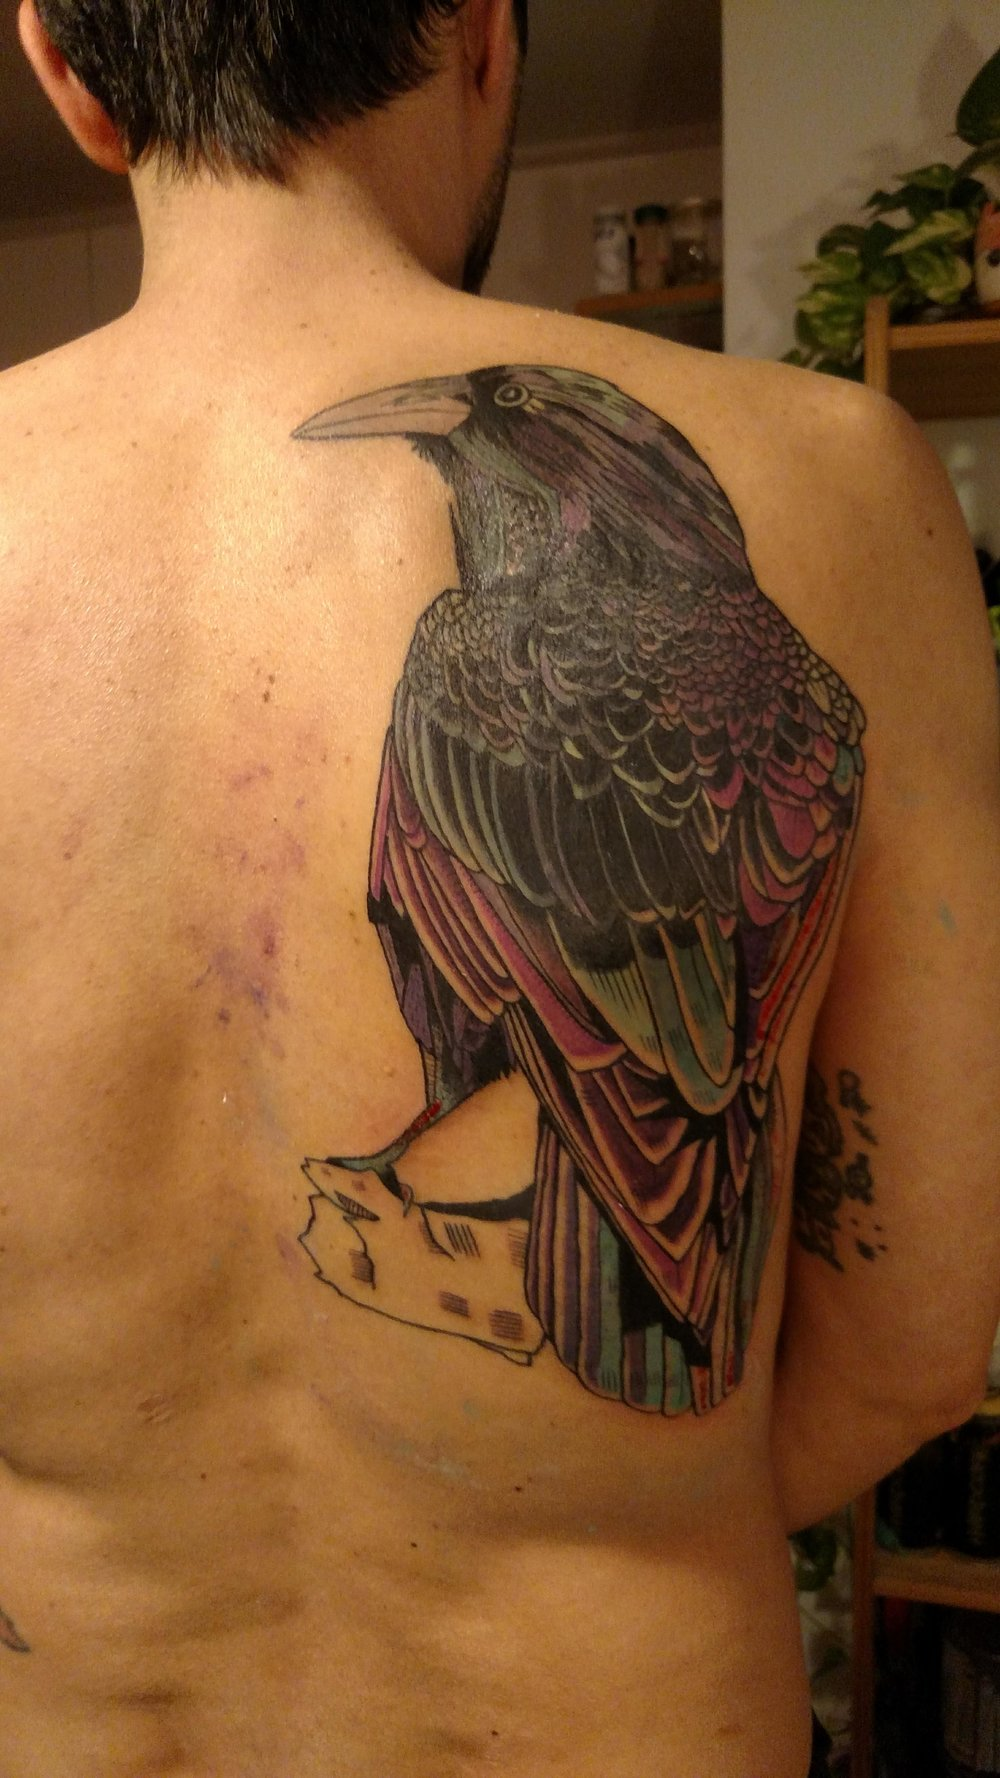 Limpio tattoo_03.jpg